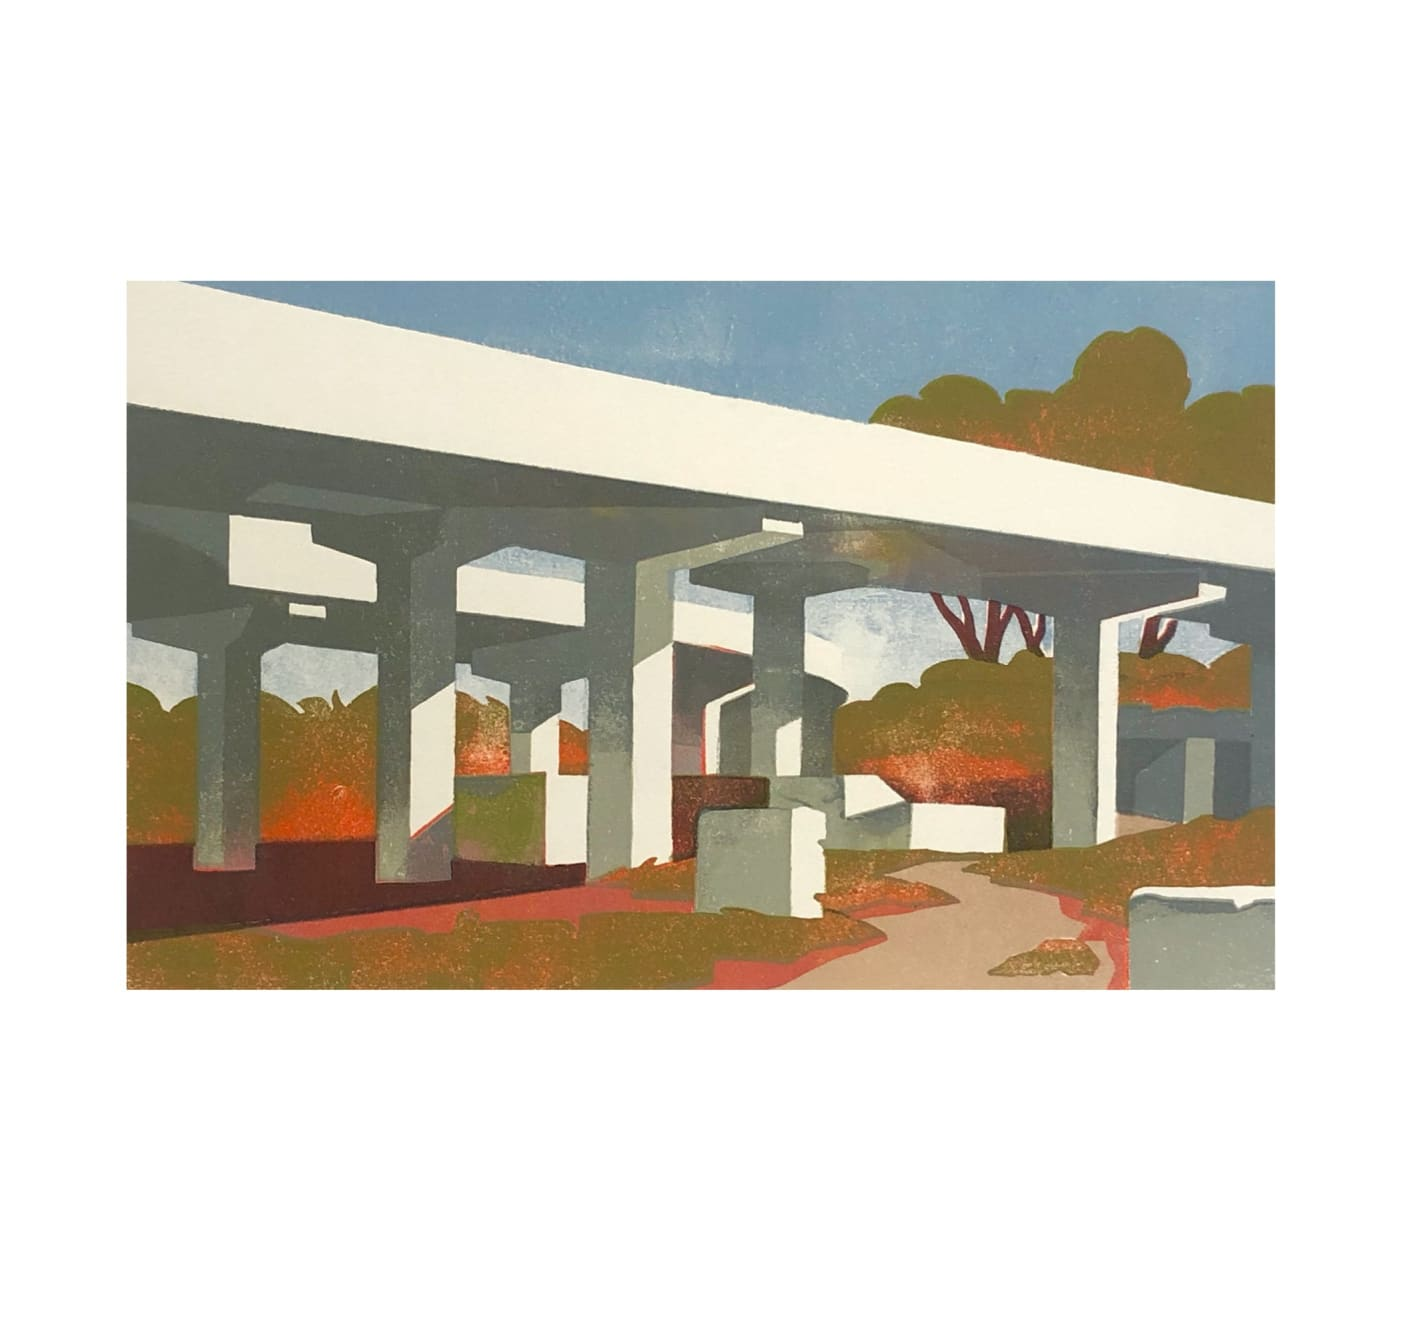 Paul Catherall, Under Pass, 2020